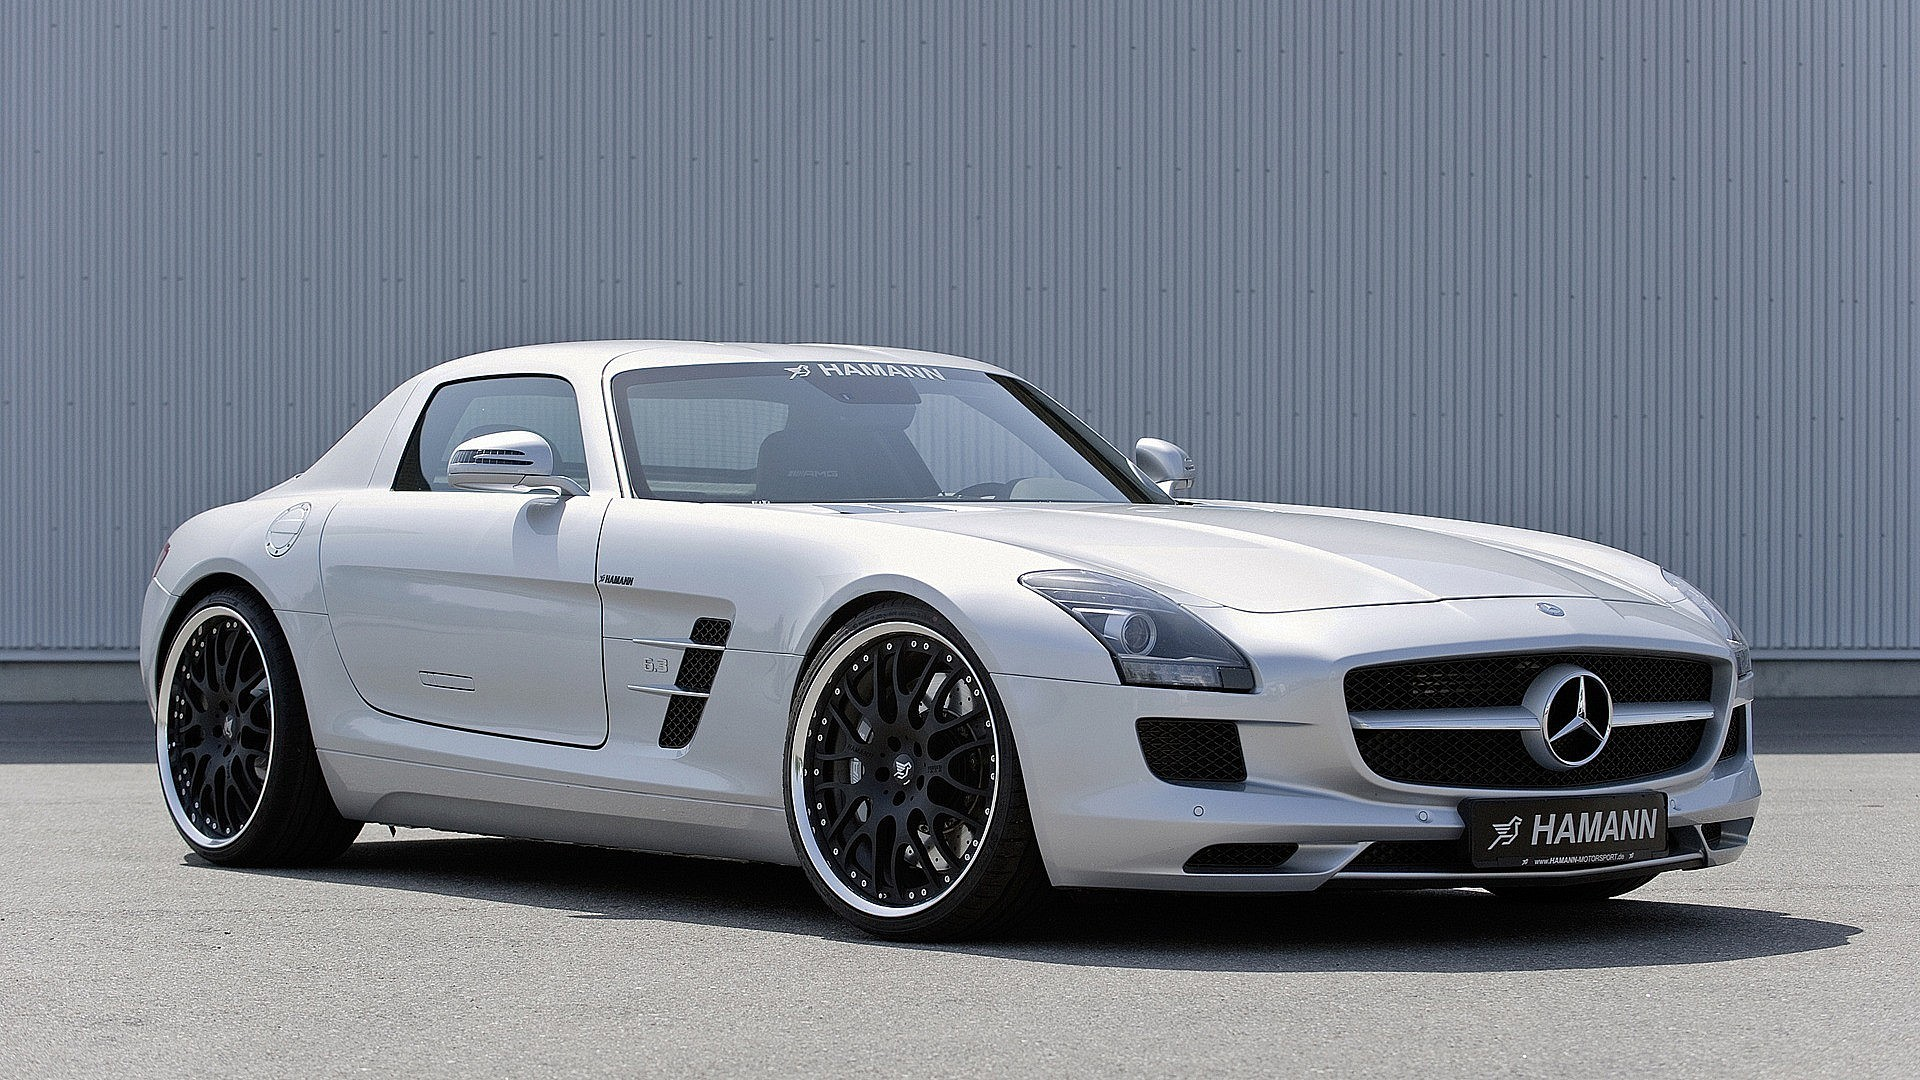 1920x1080 Hamann Mercedes Benz Sls Amg 2010 Hd Wallpaper ...